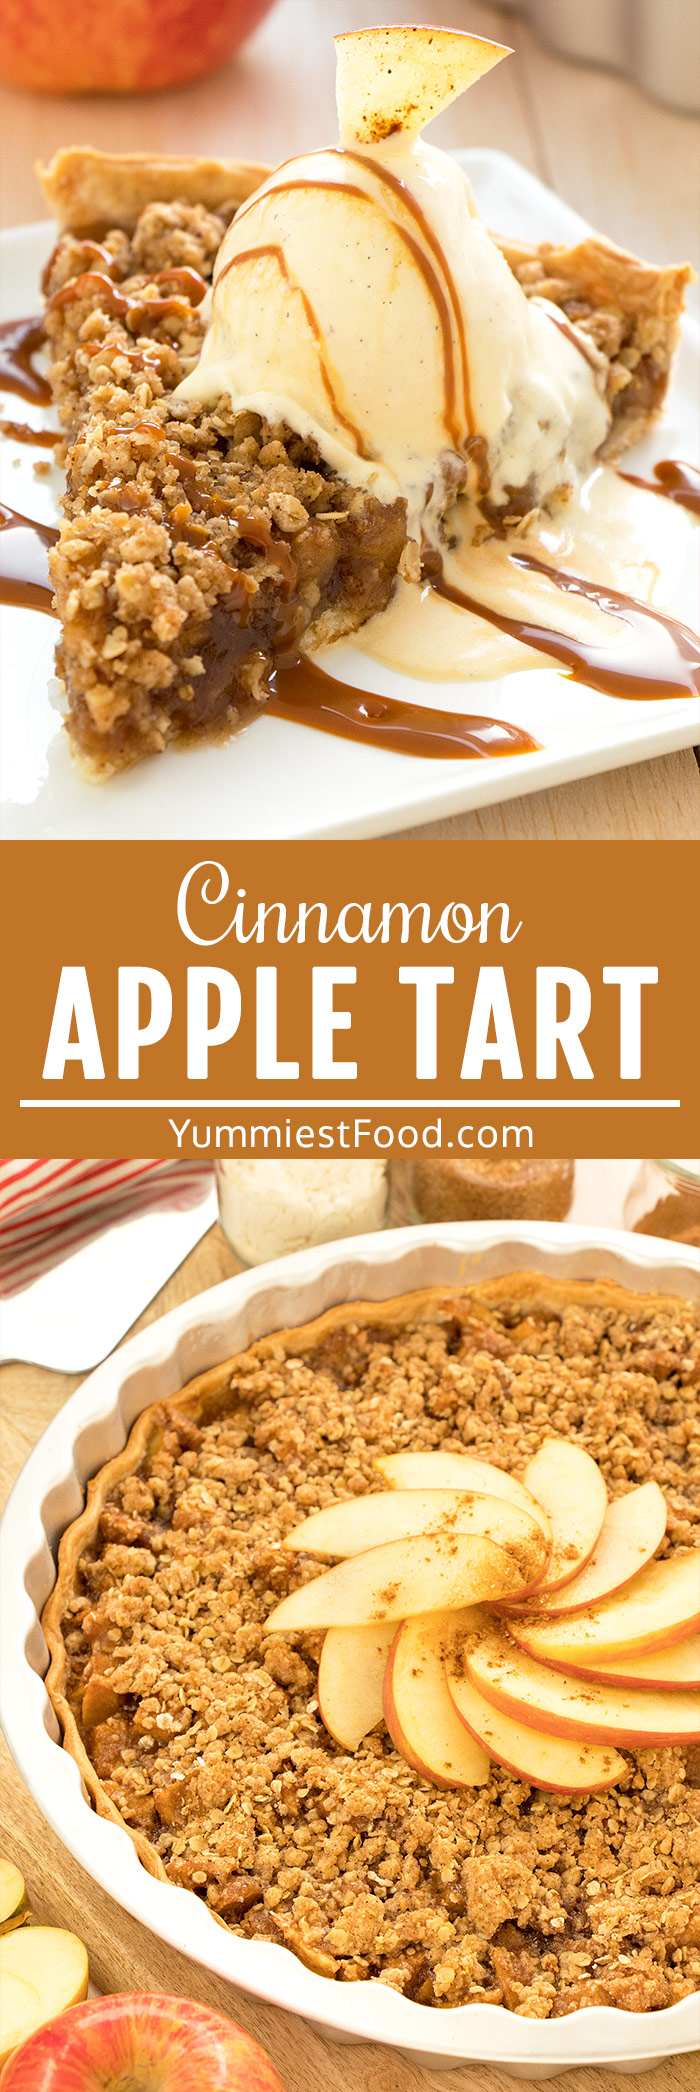 Cinnamon Apple Tart Recipe with Caramel Ice Cream Topping